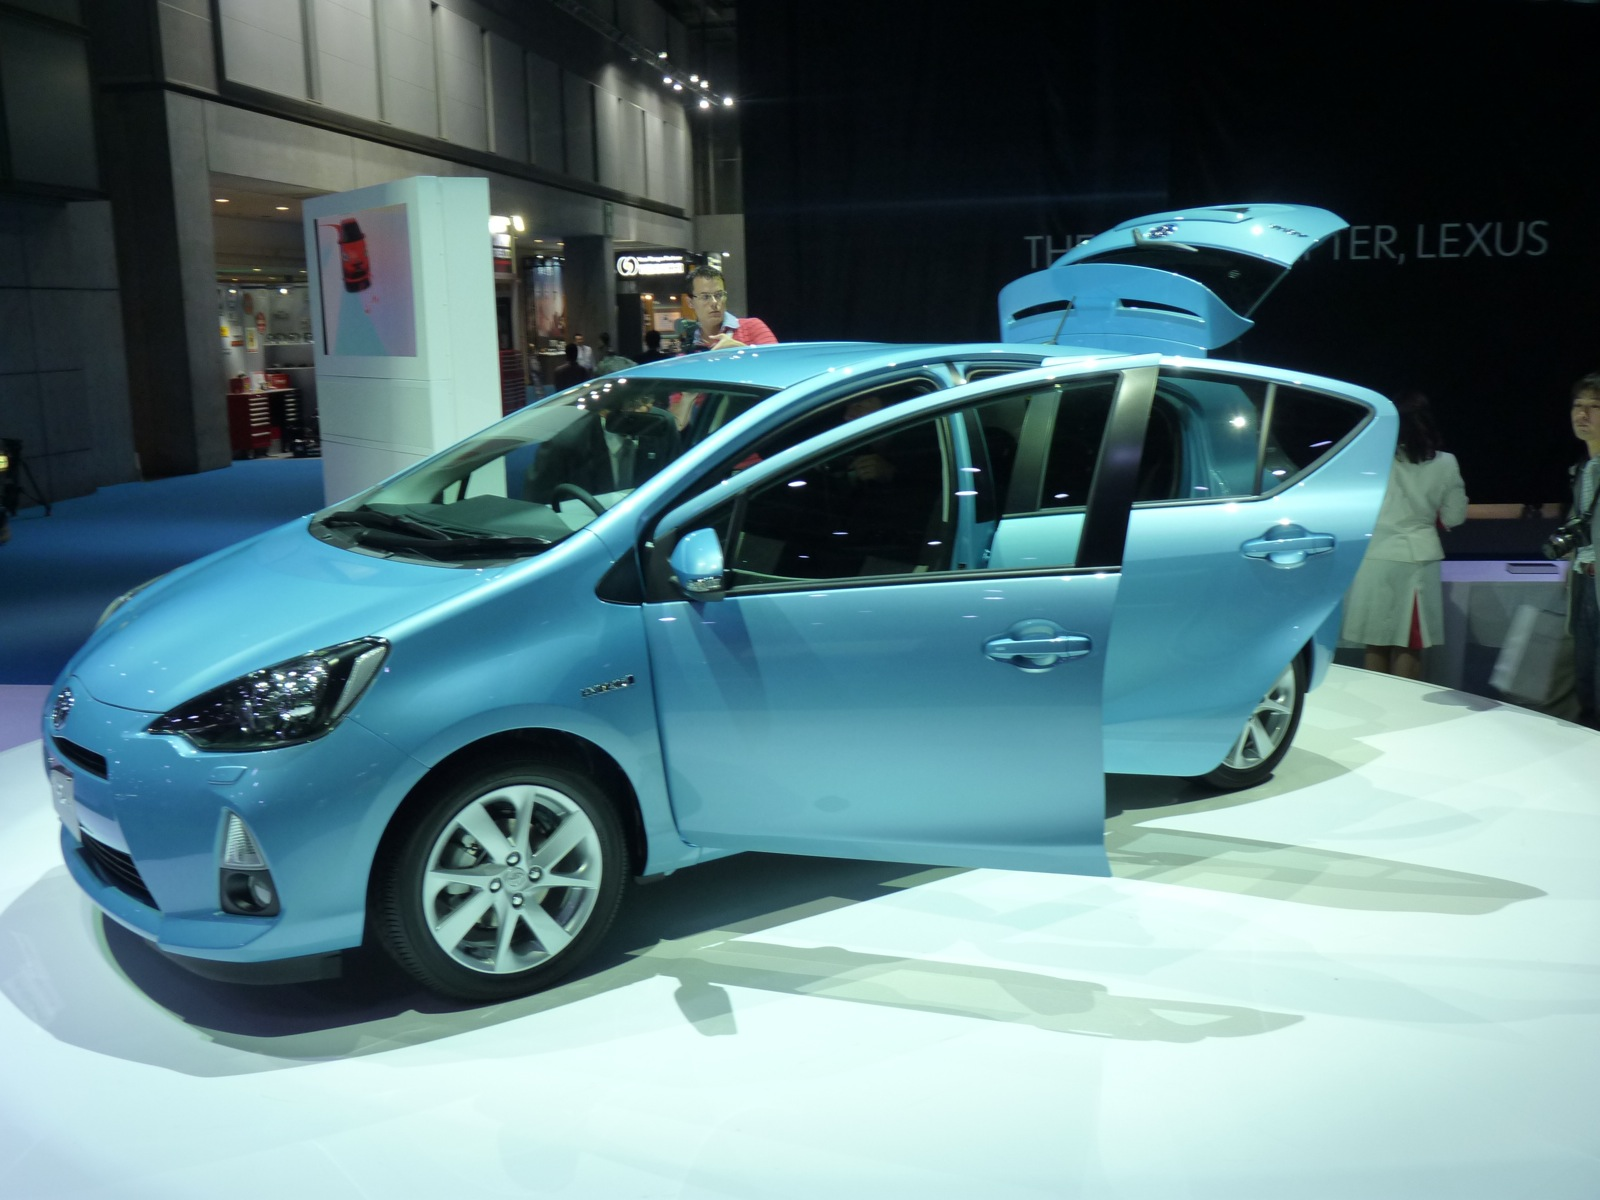 2012 toyota prius c compact hybrid 2011 tokyo motor show debut live gallery